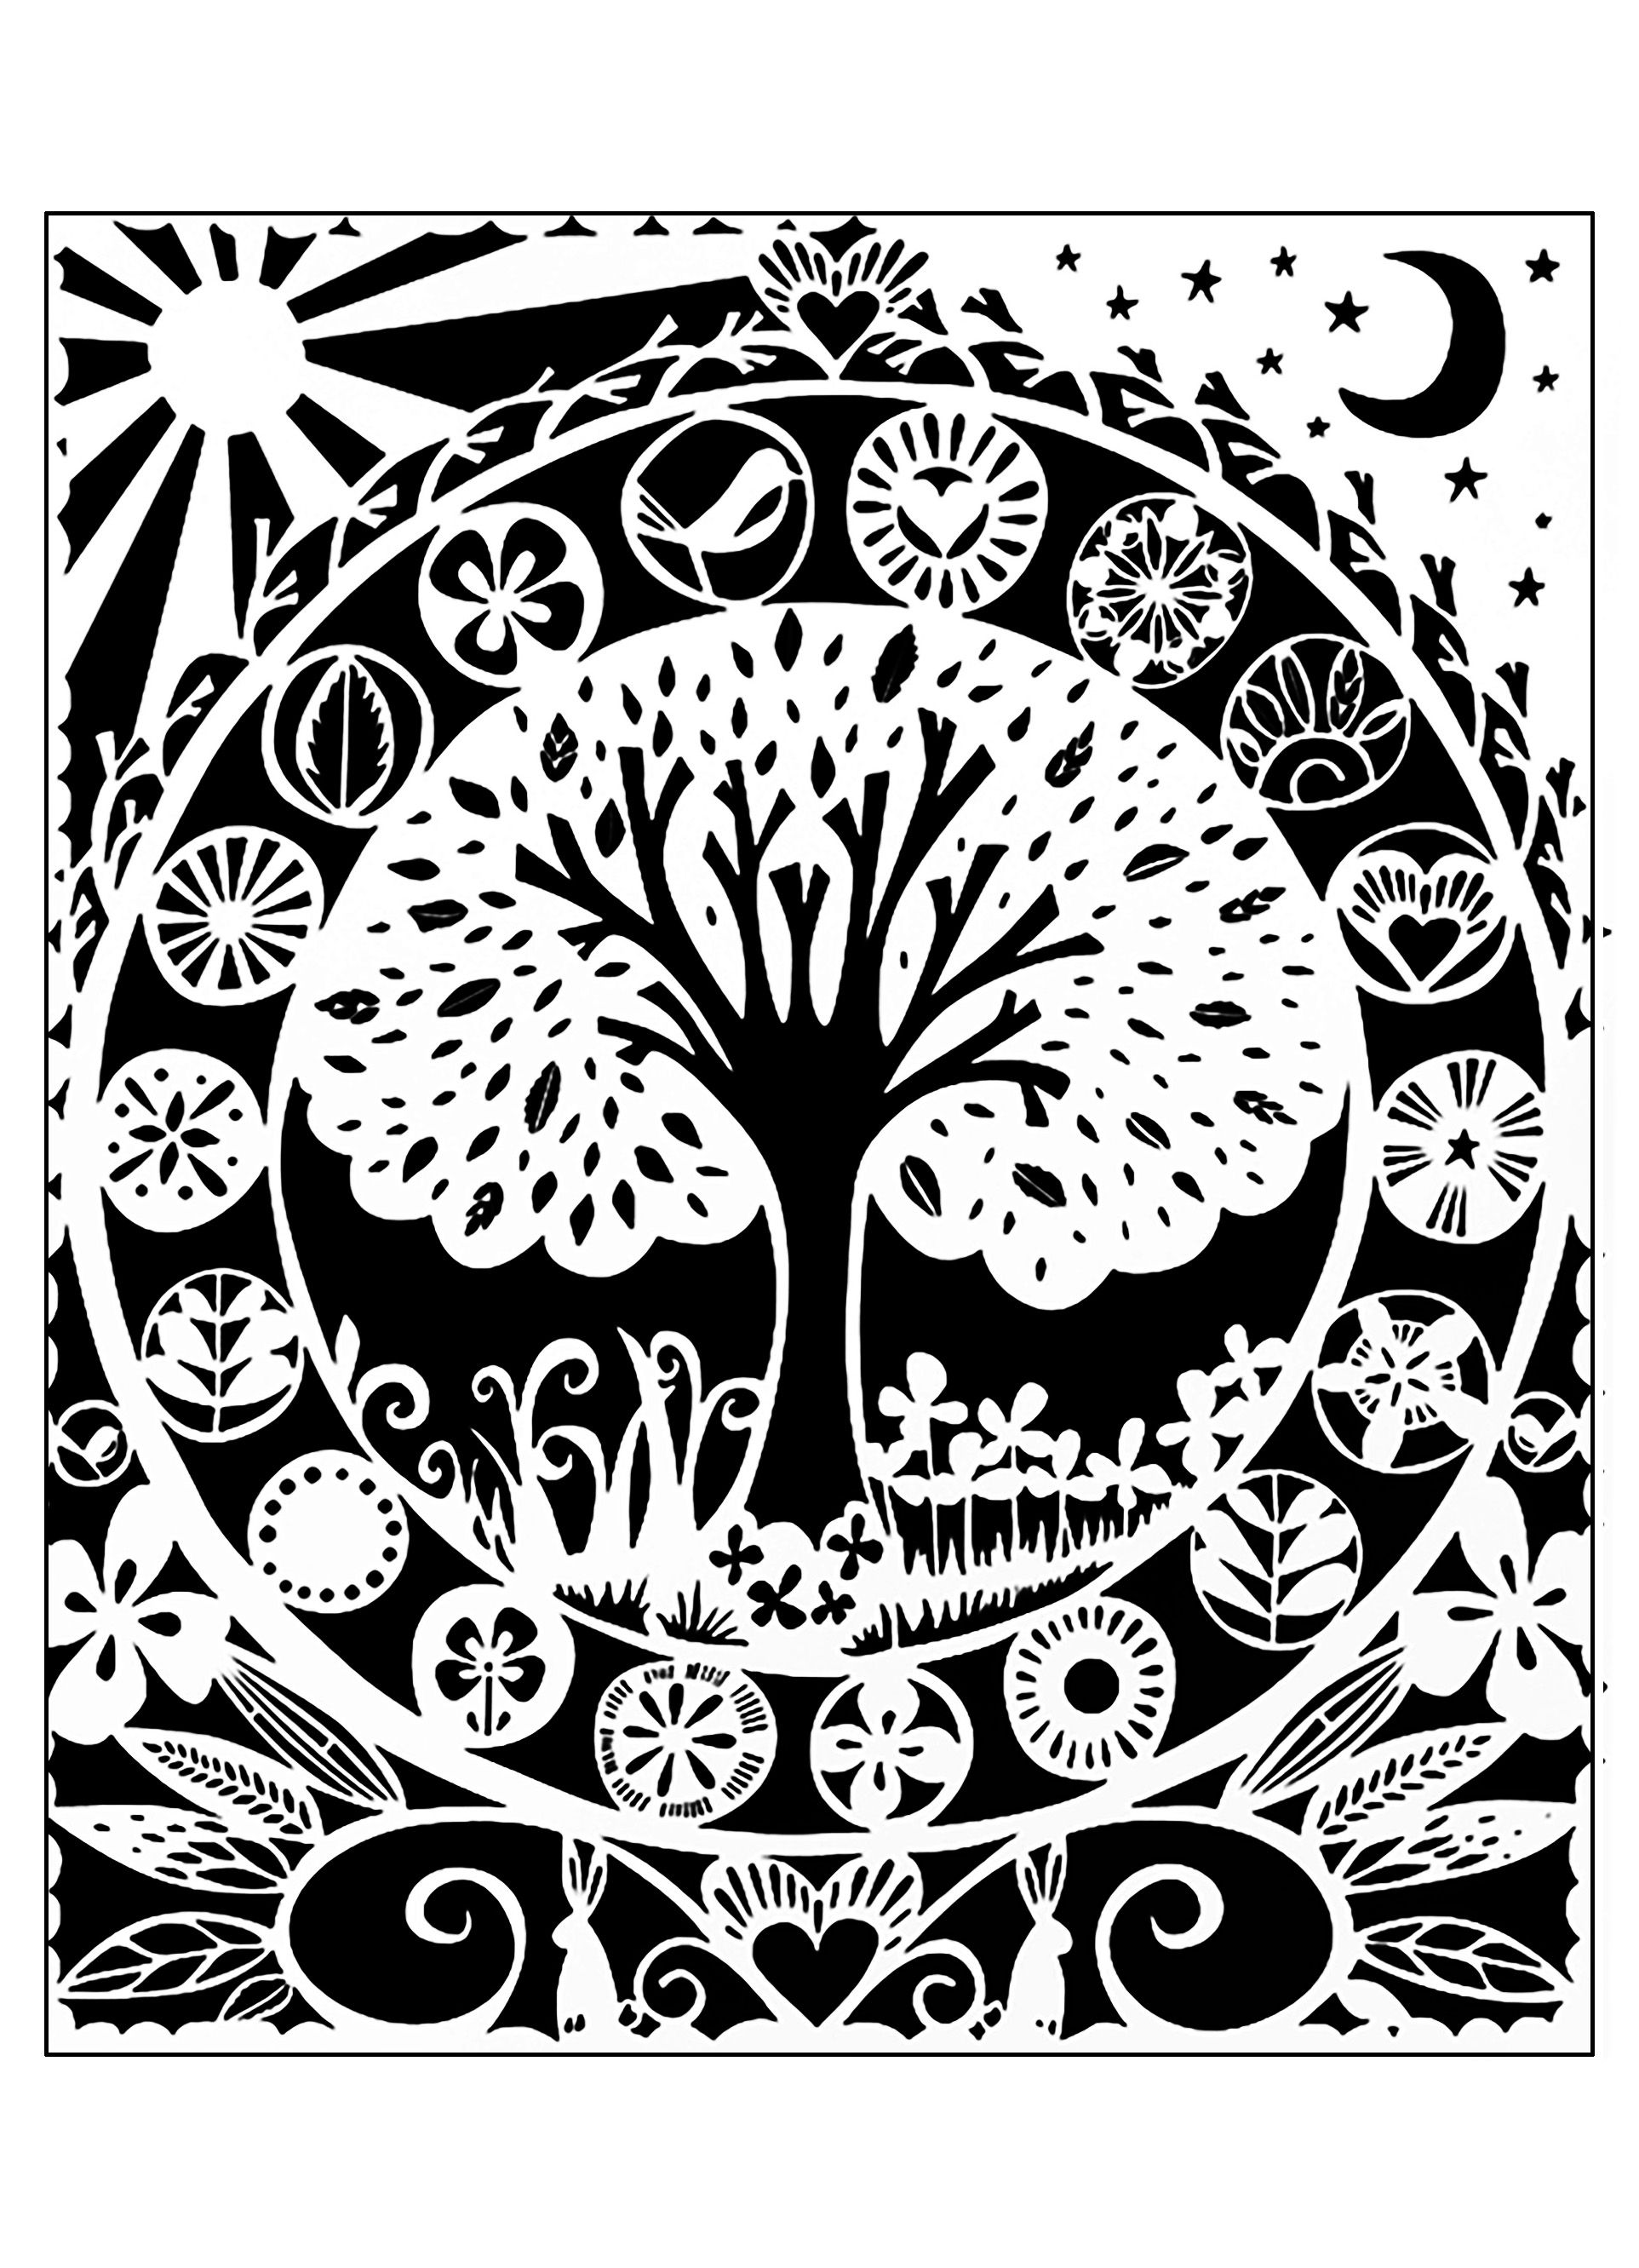 Coloring pictures of flowers and trees - Beautiful Tree To Color White Version From The Gallery Flowers And Vegetation